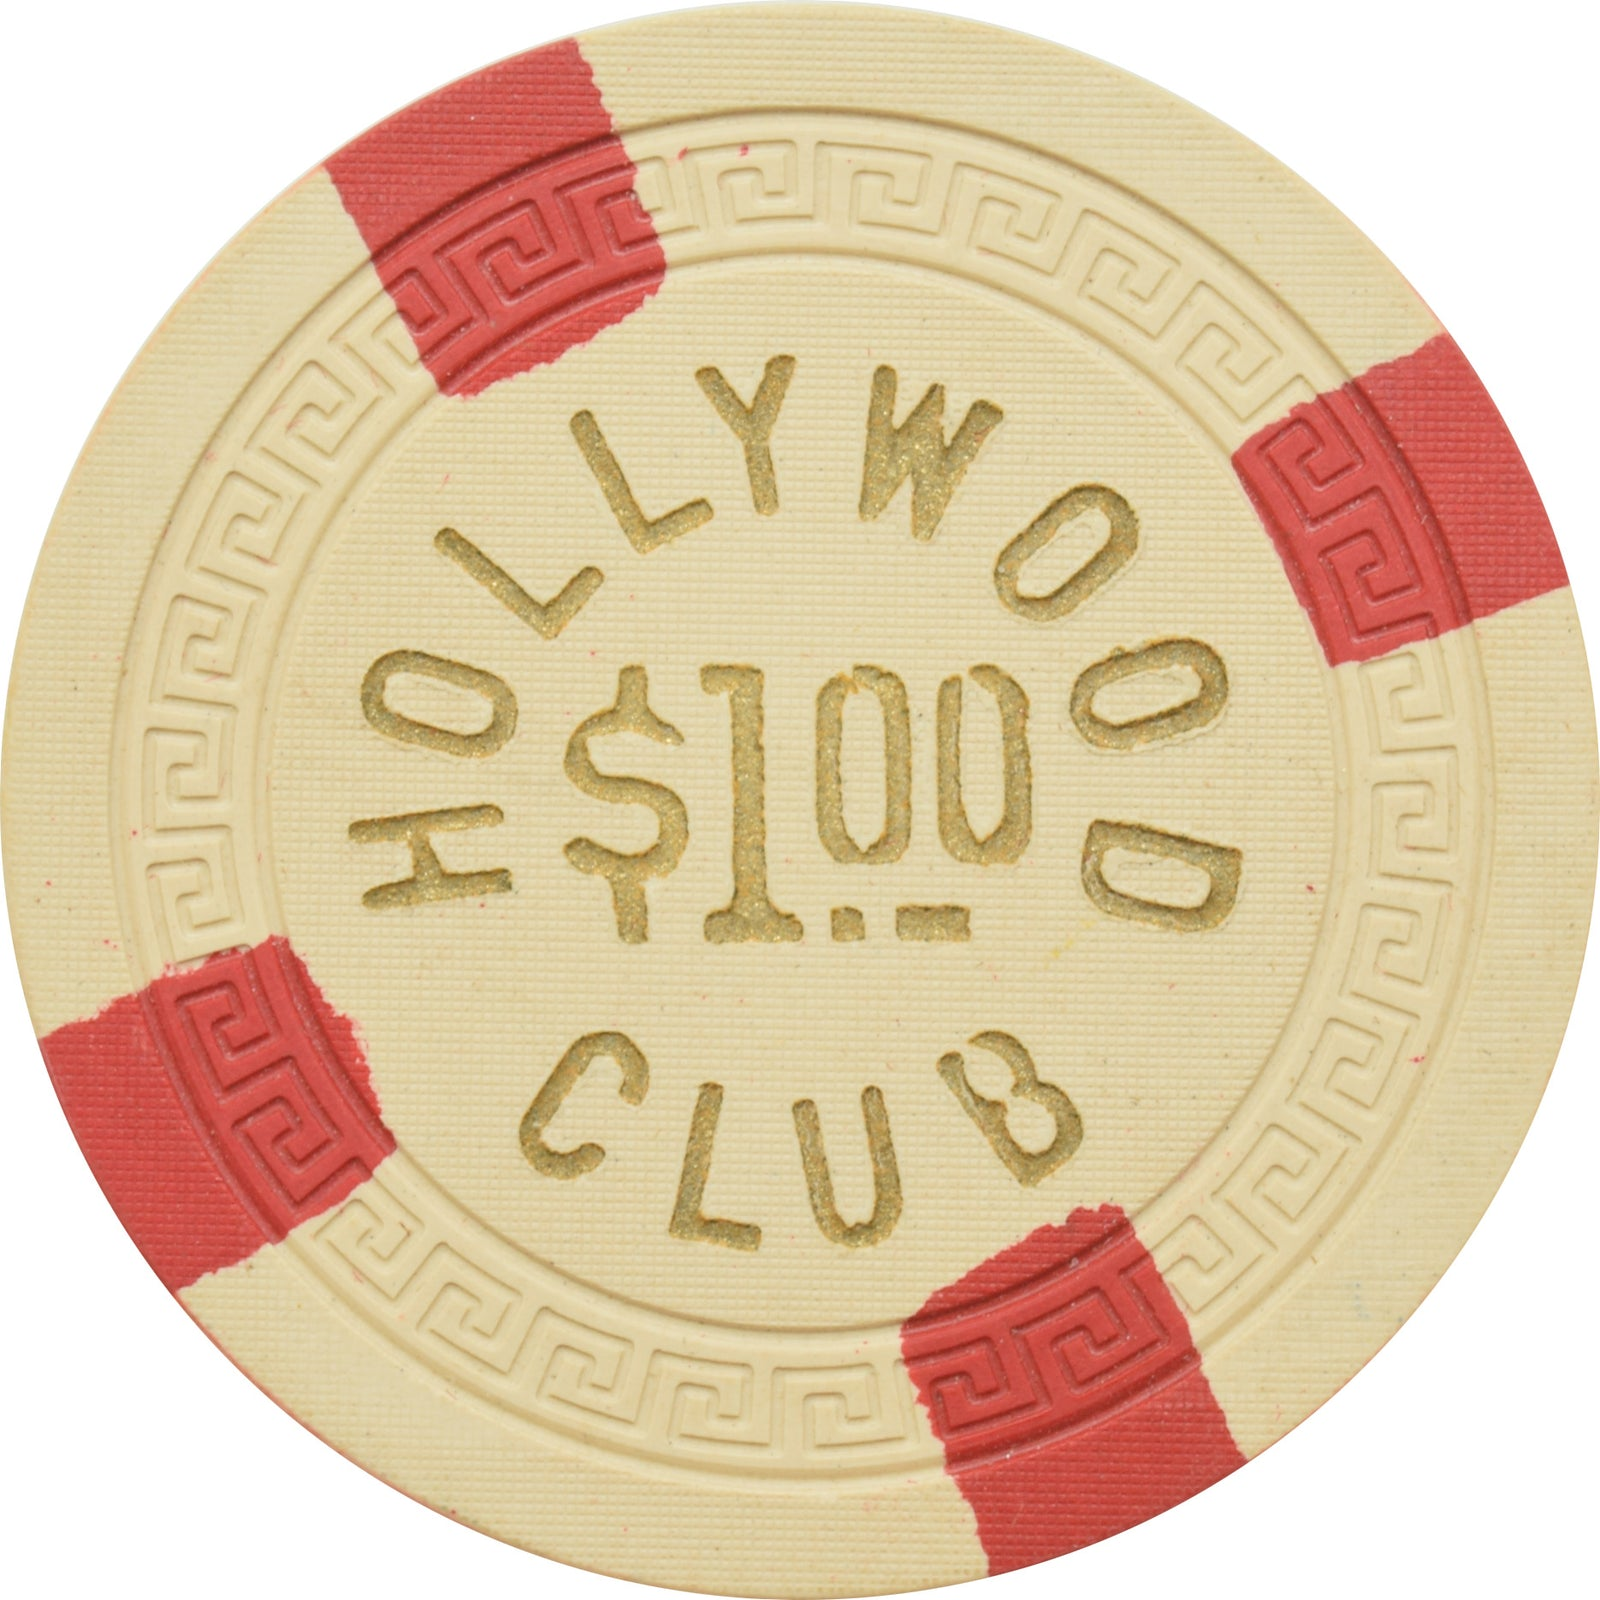 Casino Players Club Manager Salary